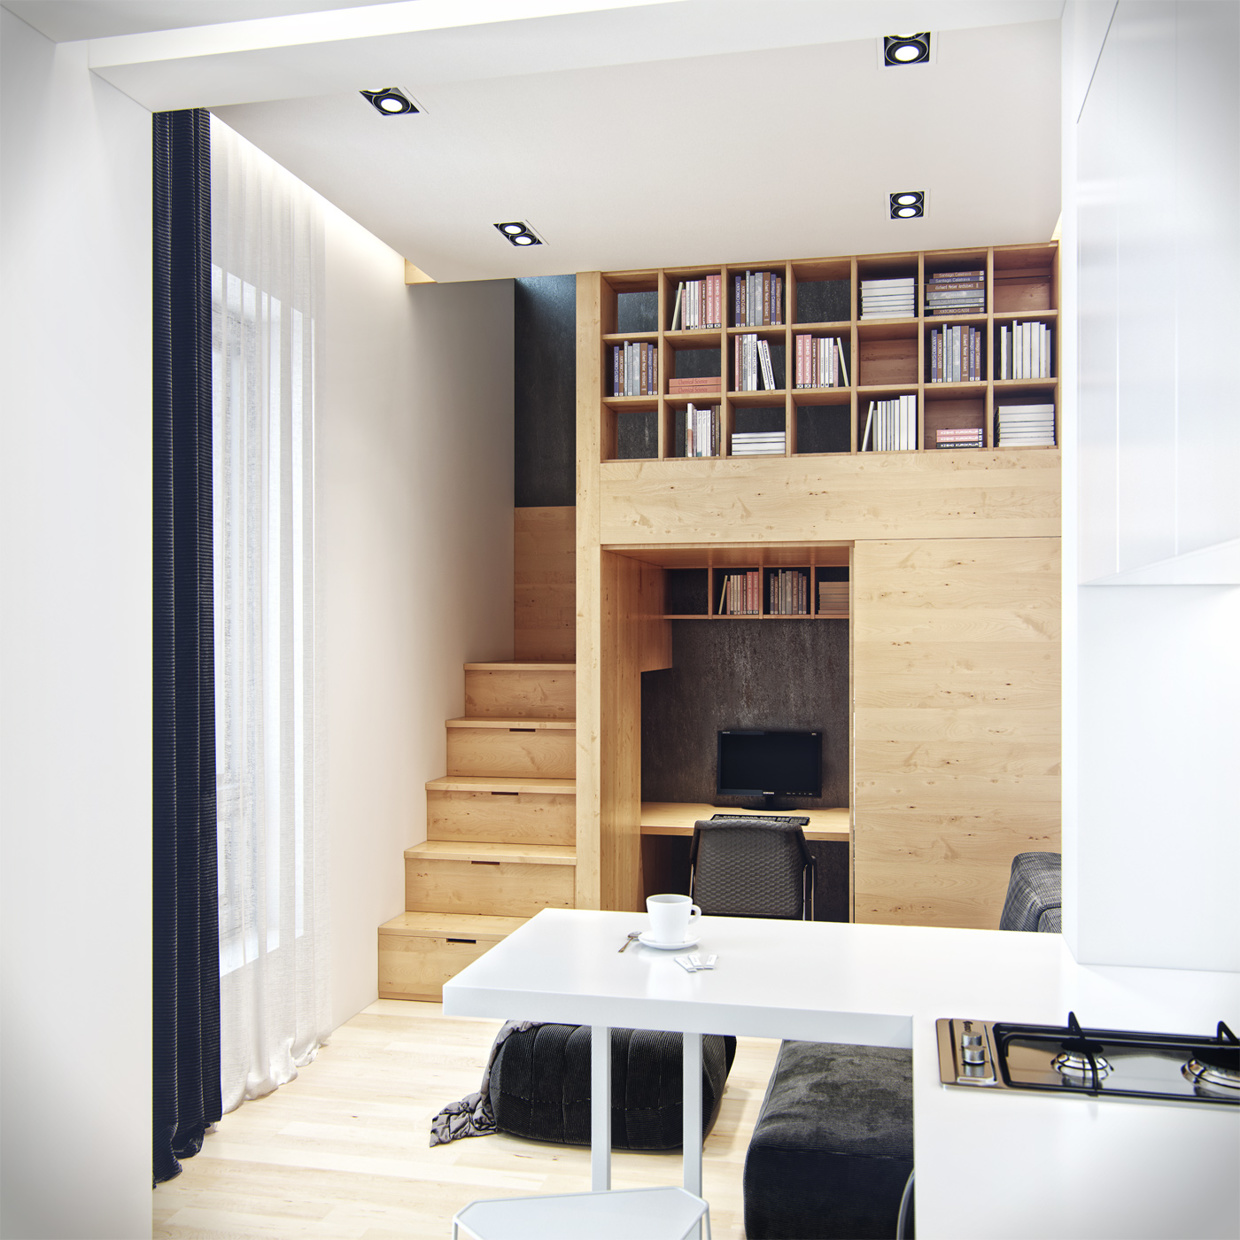 residential house reconstruction with addition of a mansard floor 12 Tiny Loft Space Apartment